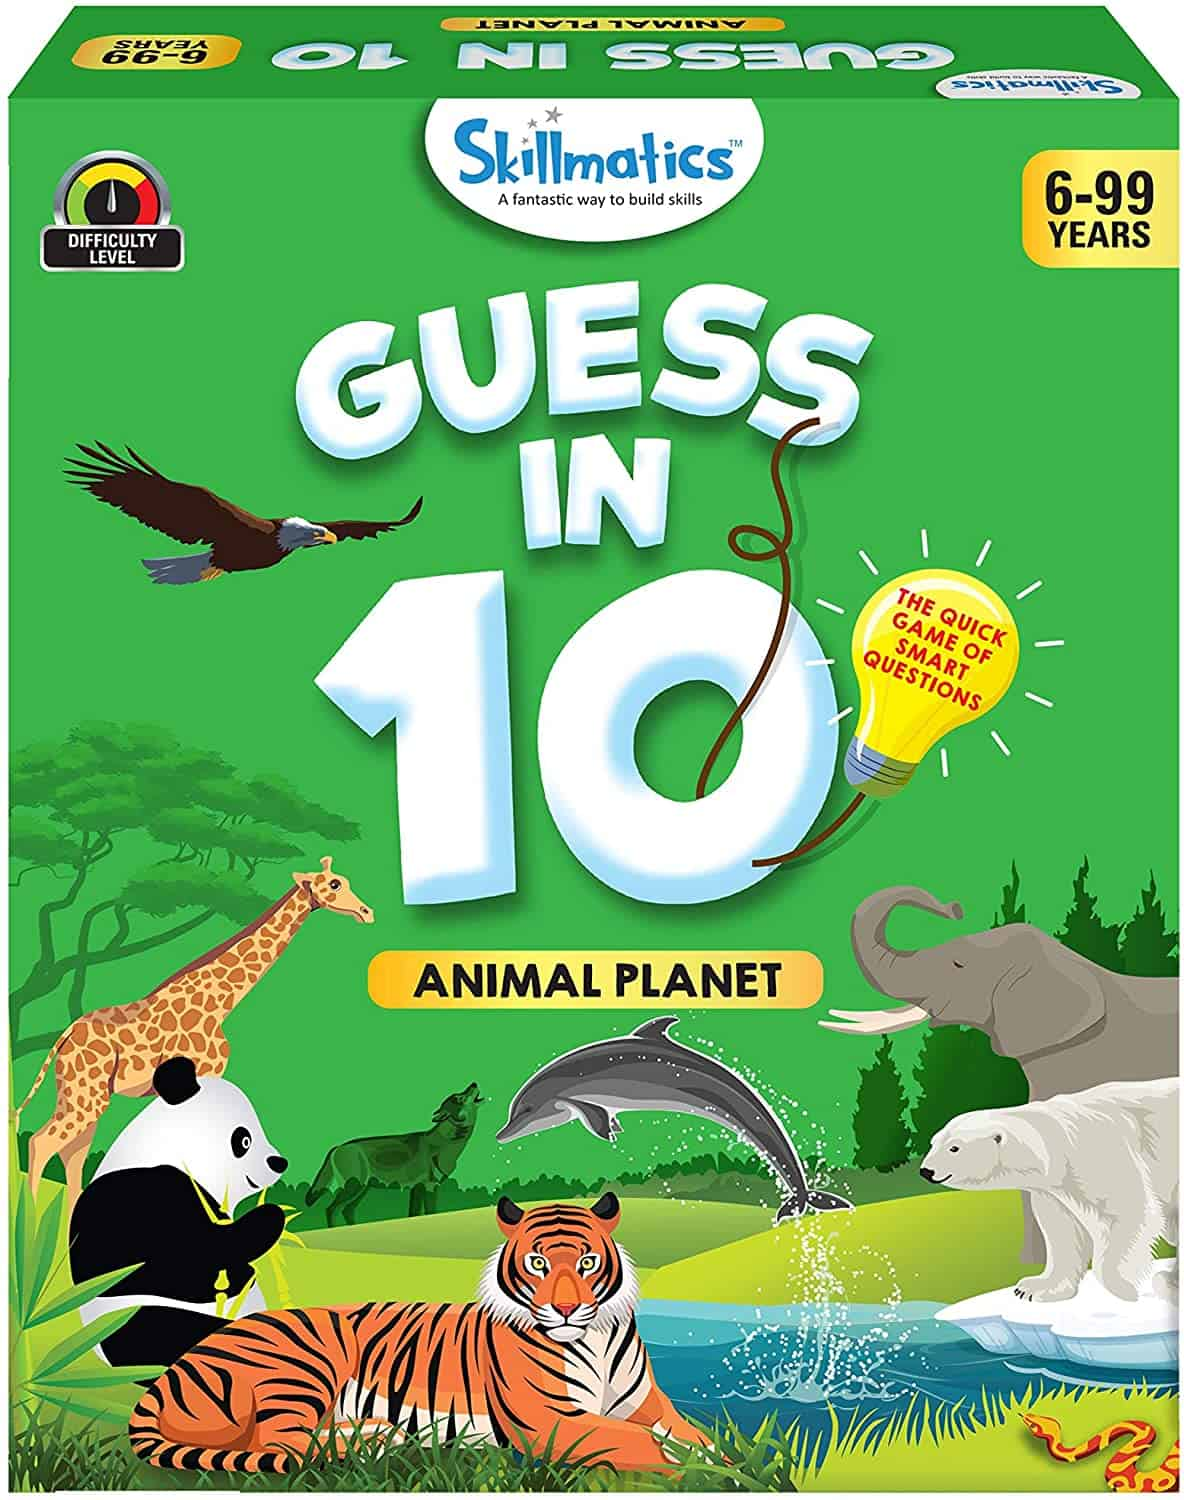 Animal Planet - Guess in 10 (Ages 6-99) | Card Game of Smart Questions